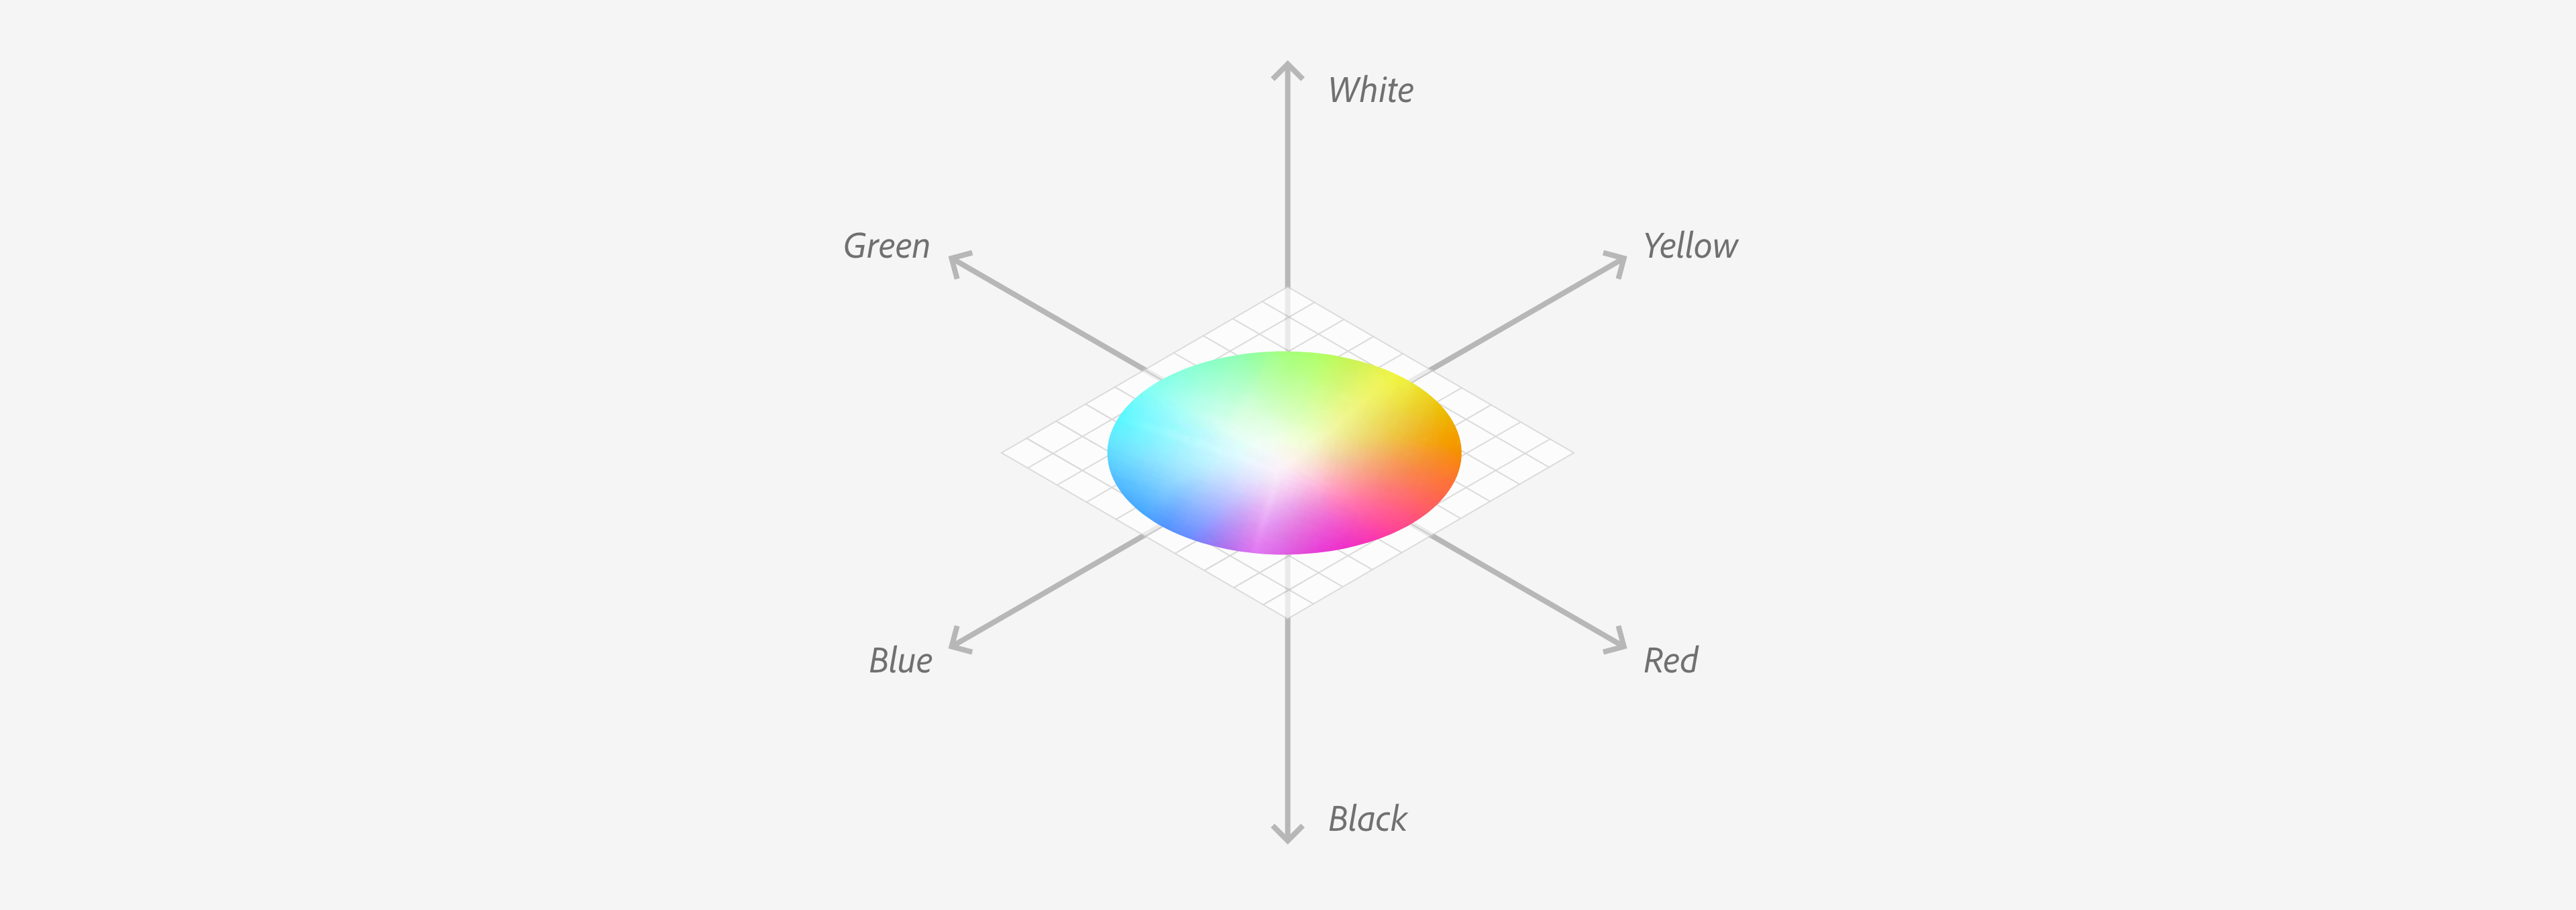 Cartesian diagram expressing the general mapping of LAB color space.